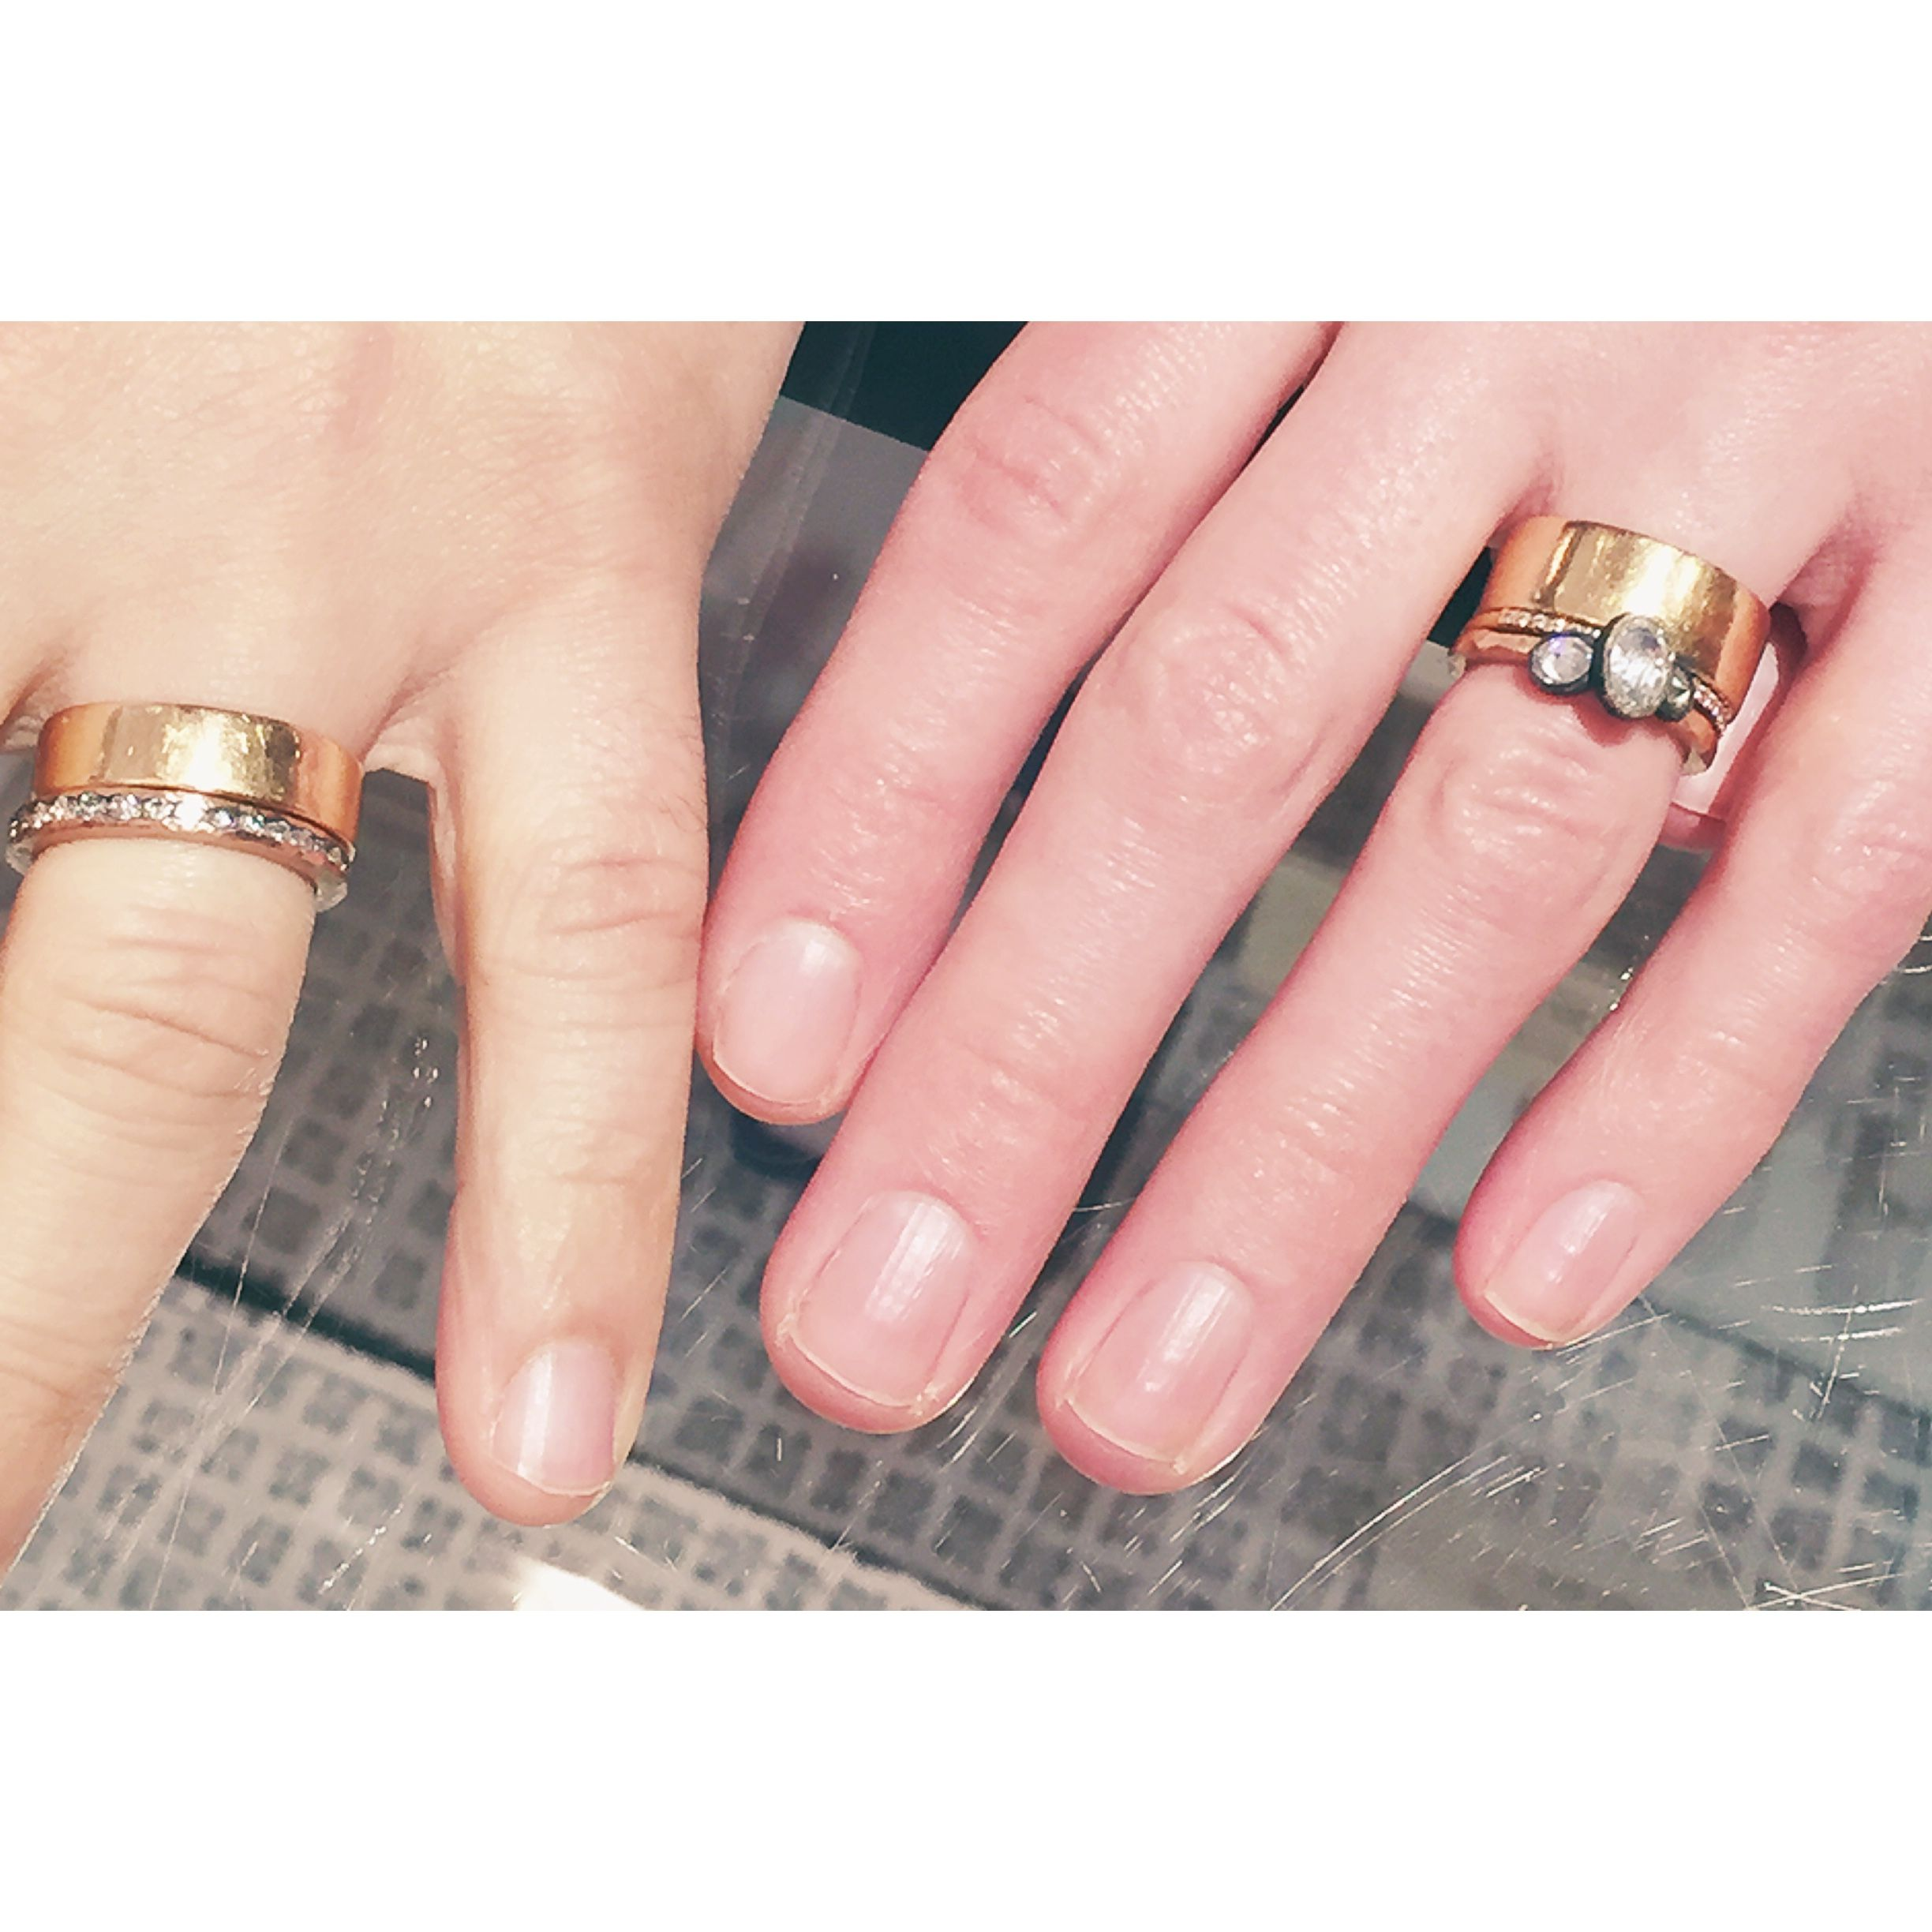 Wedding bands were 18k rose gold designed by Megan Thorne, with Todd ...